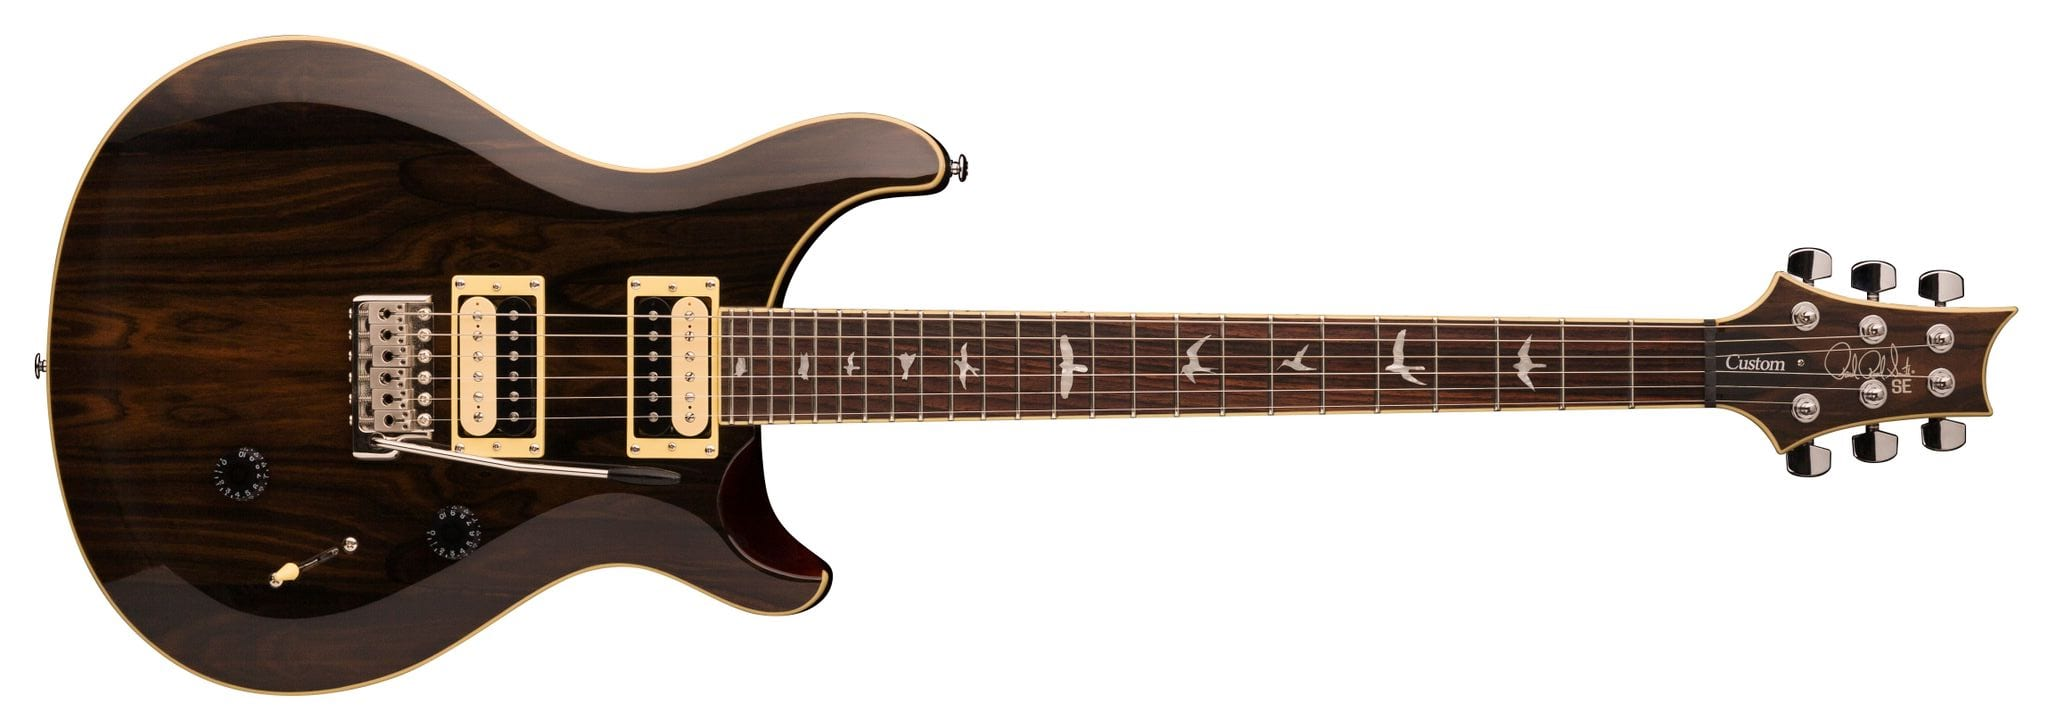 PRS SE 24 Custom 2019 in Ziricote